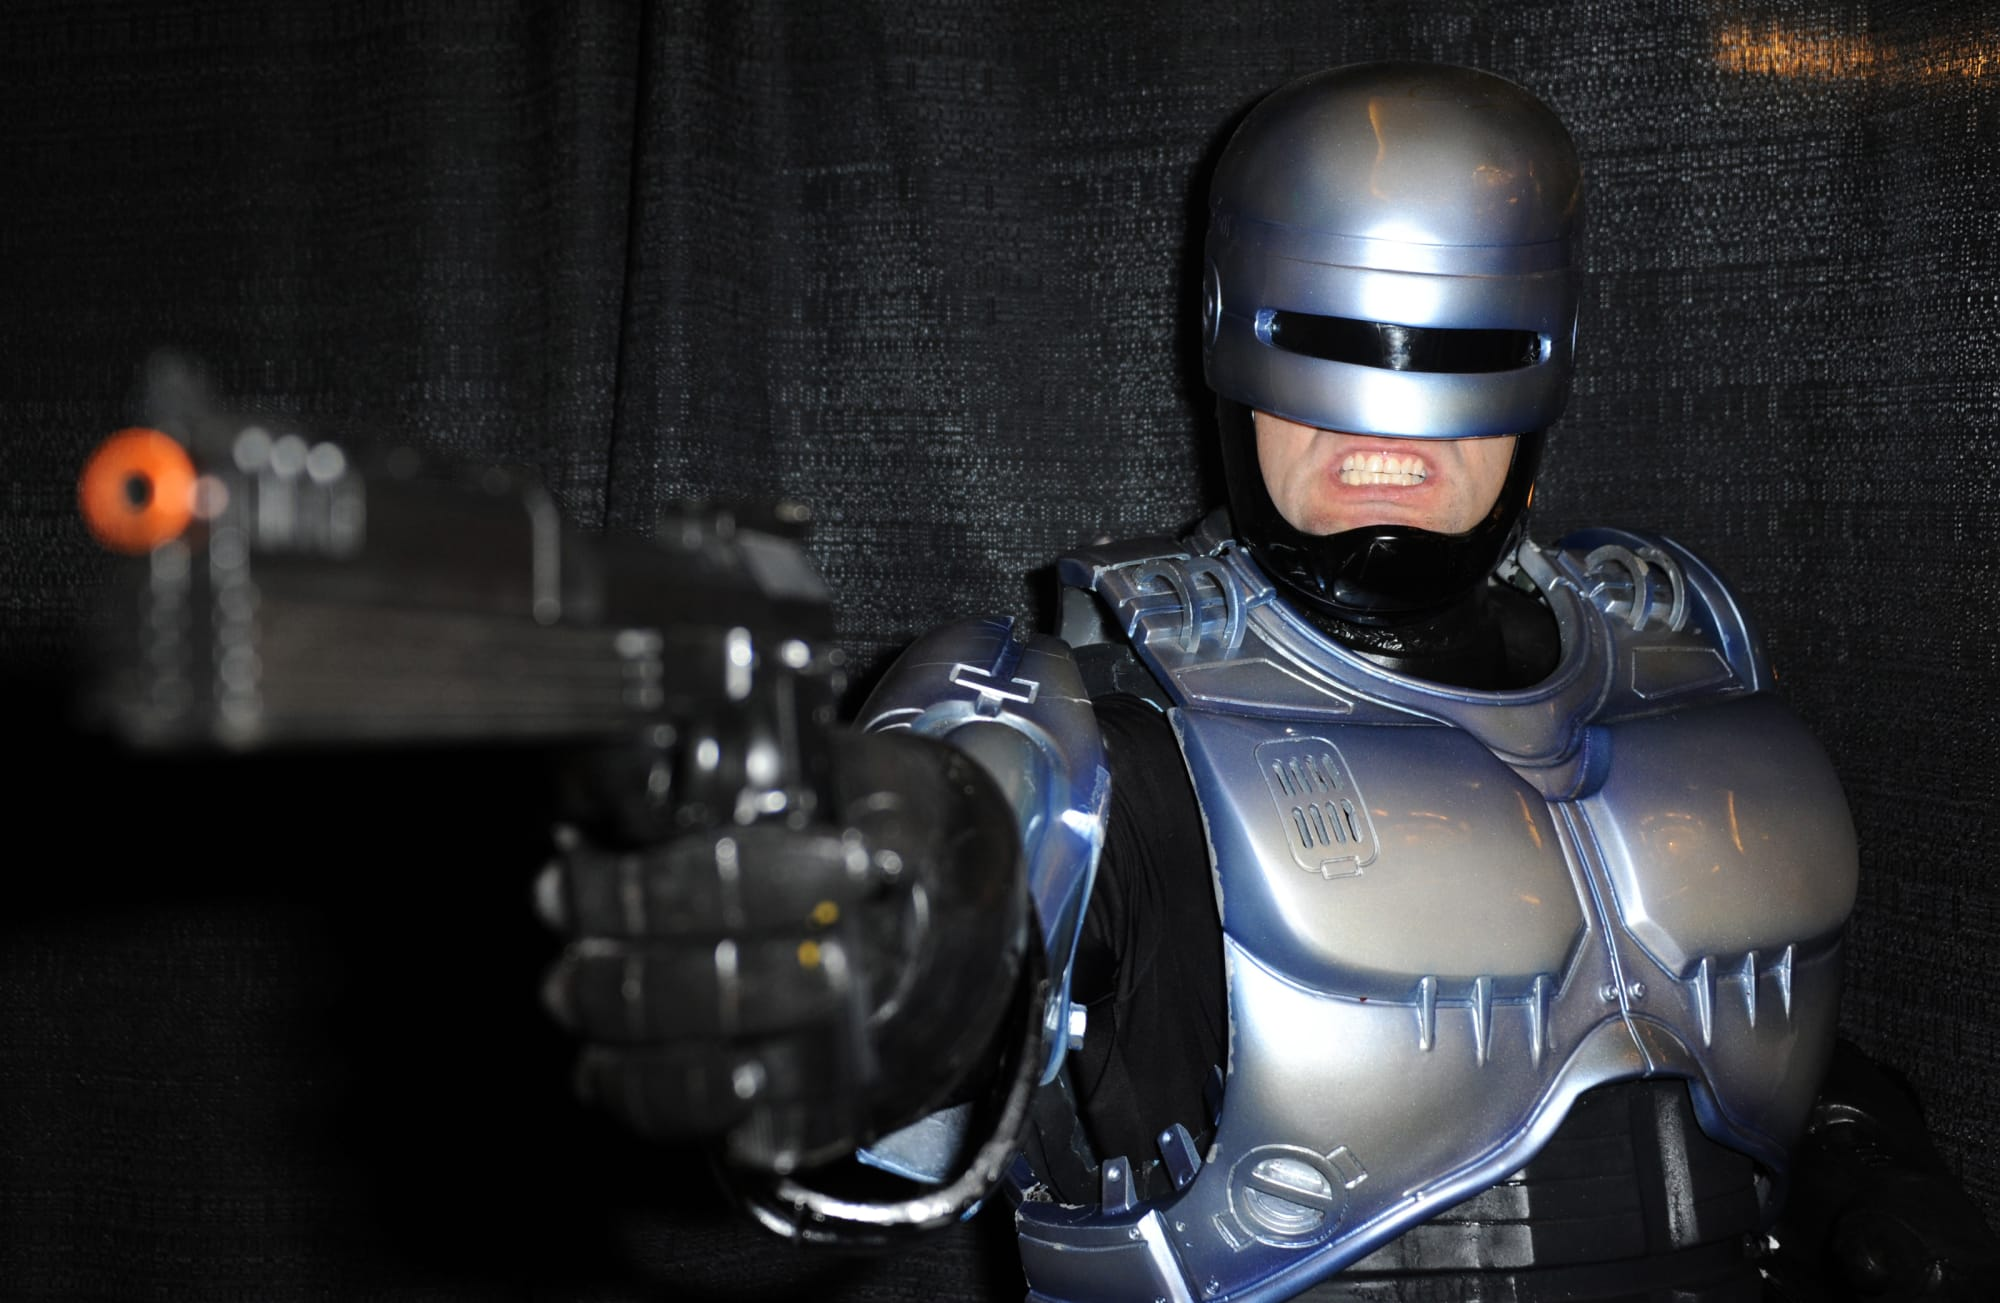 The RoboCop franchise is about to get a new series and film